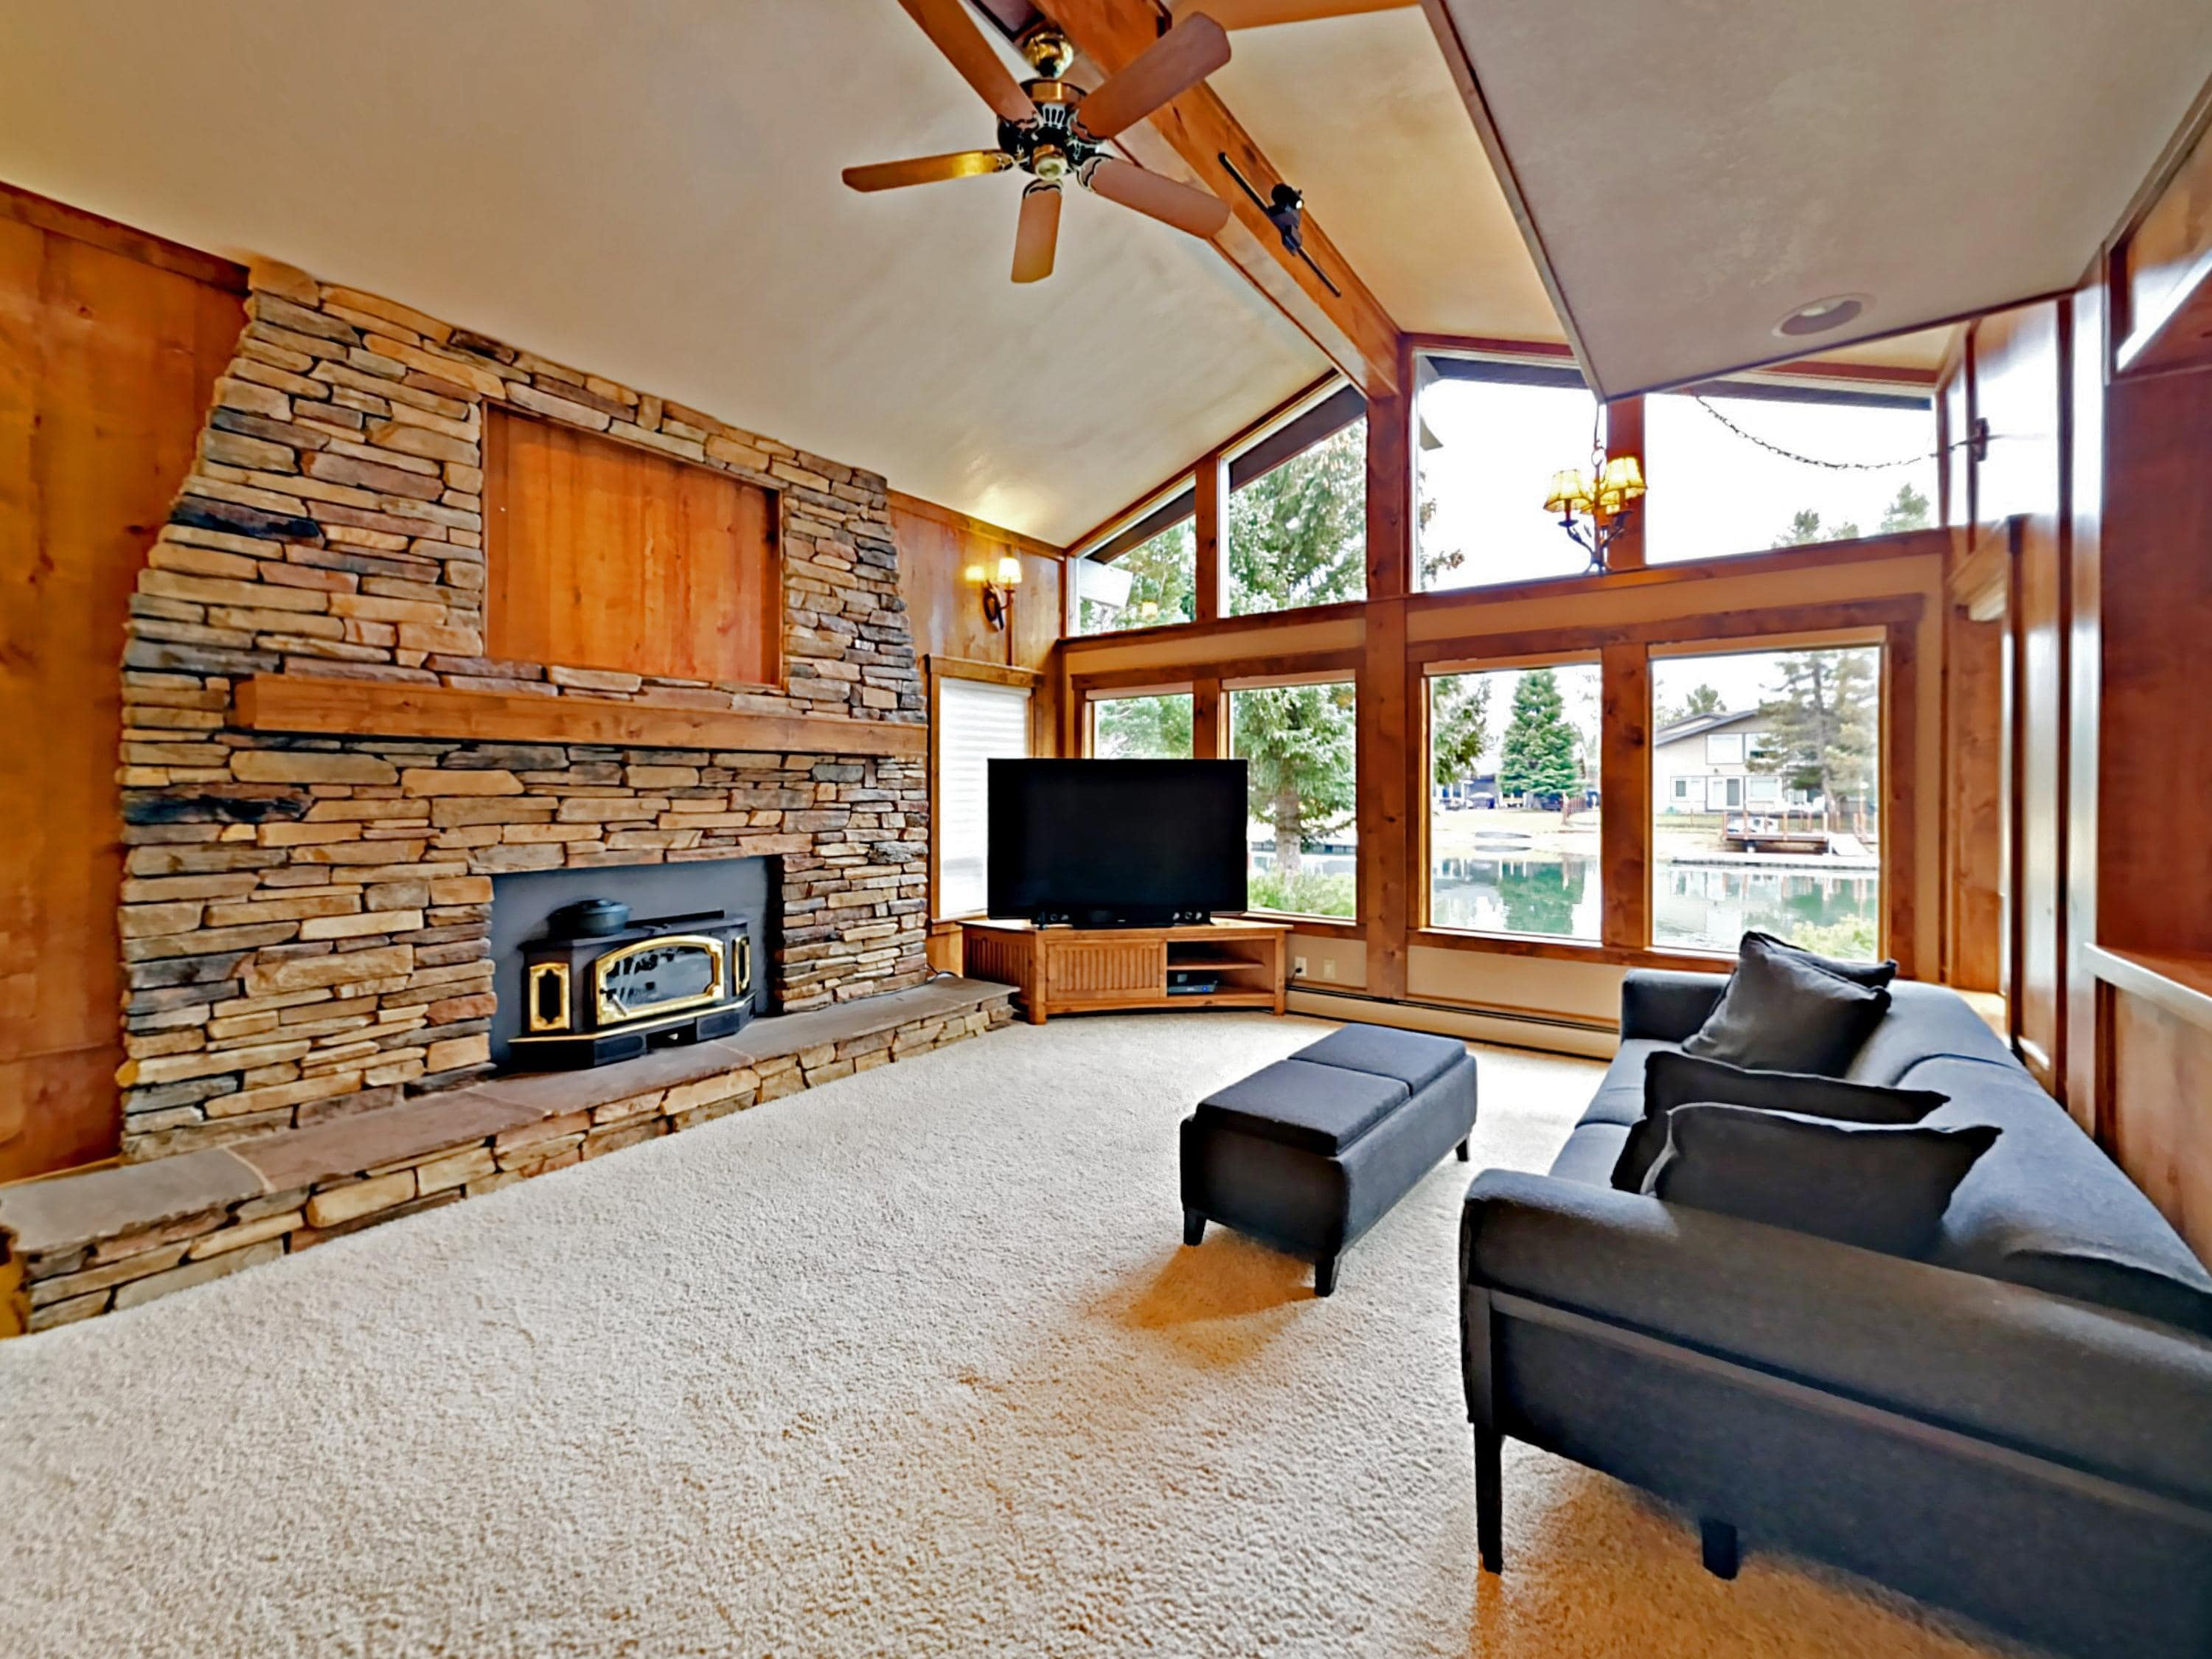 The spacious main living room offers seating for 5.